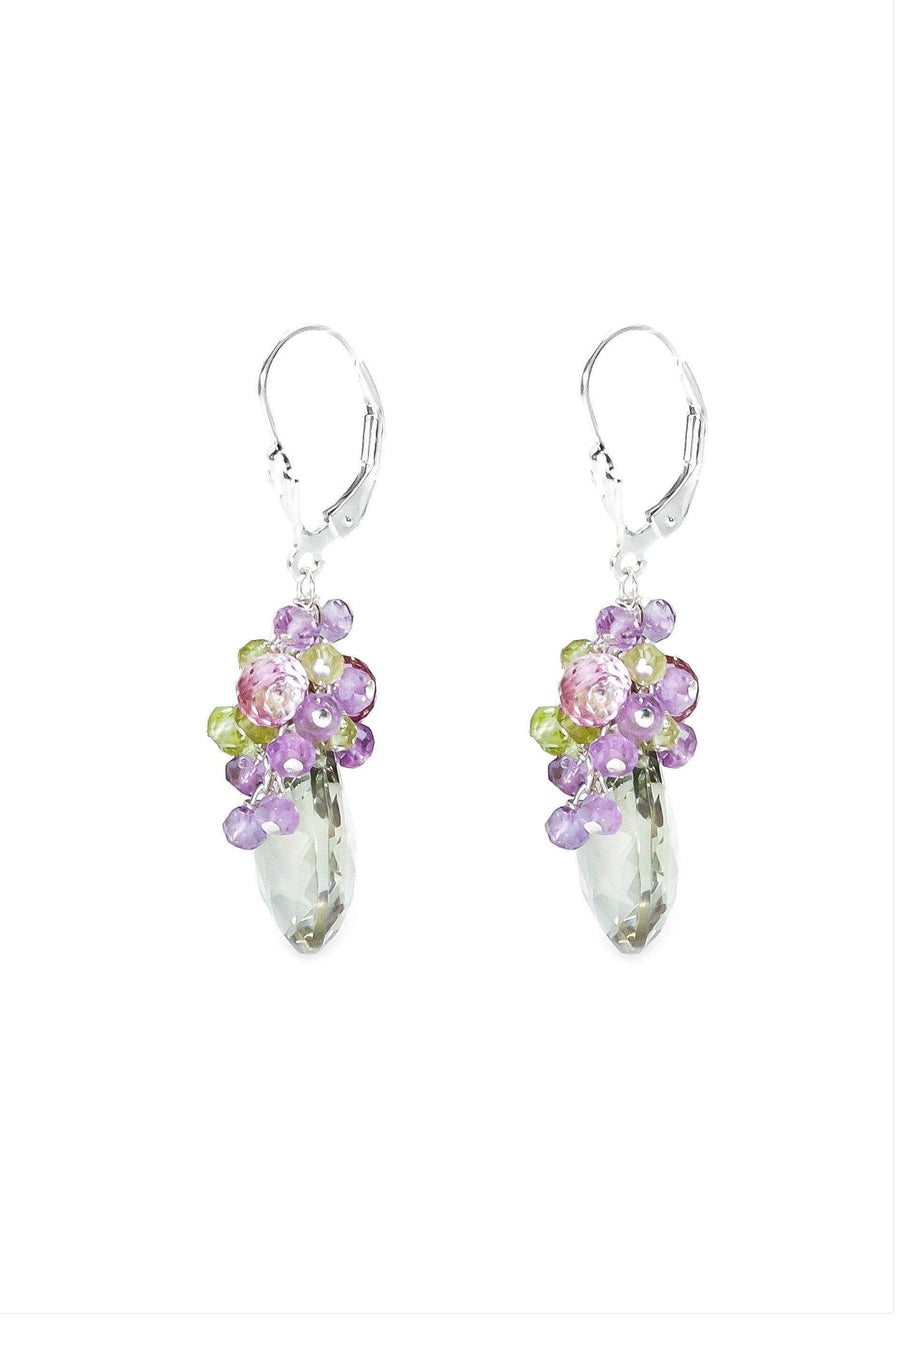 Amethyst, Pink Topaz & Peridot Grapevine Earrings - Inaya Jewelry